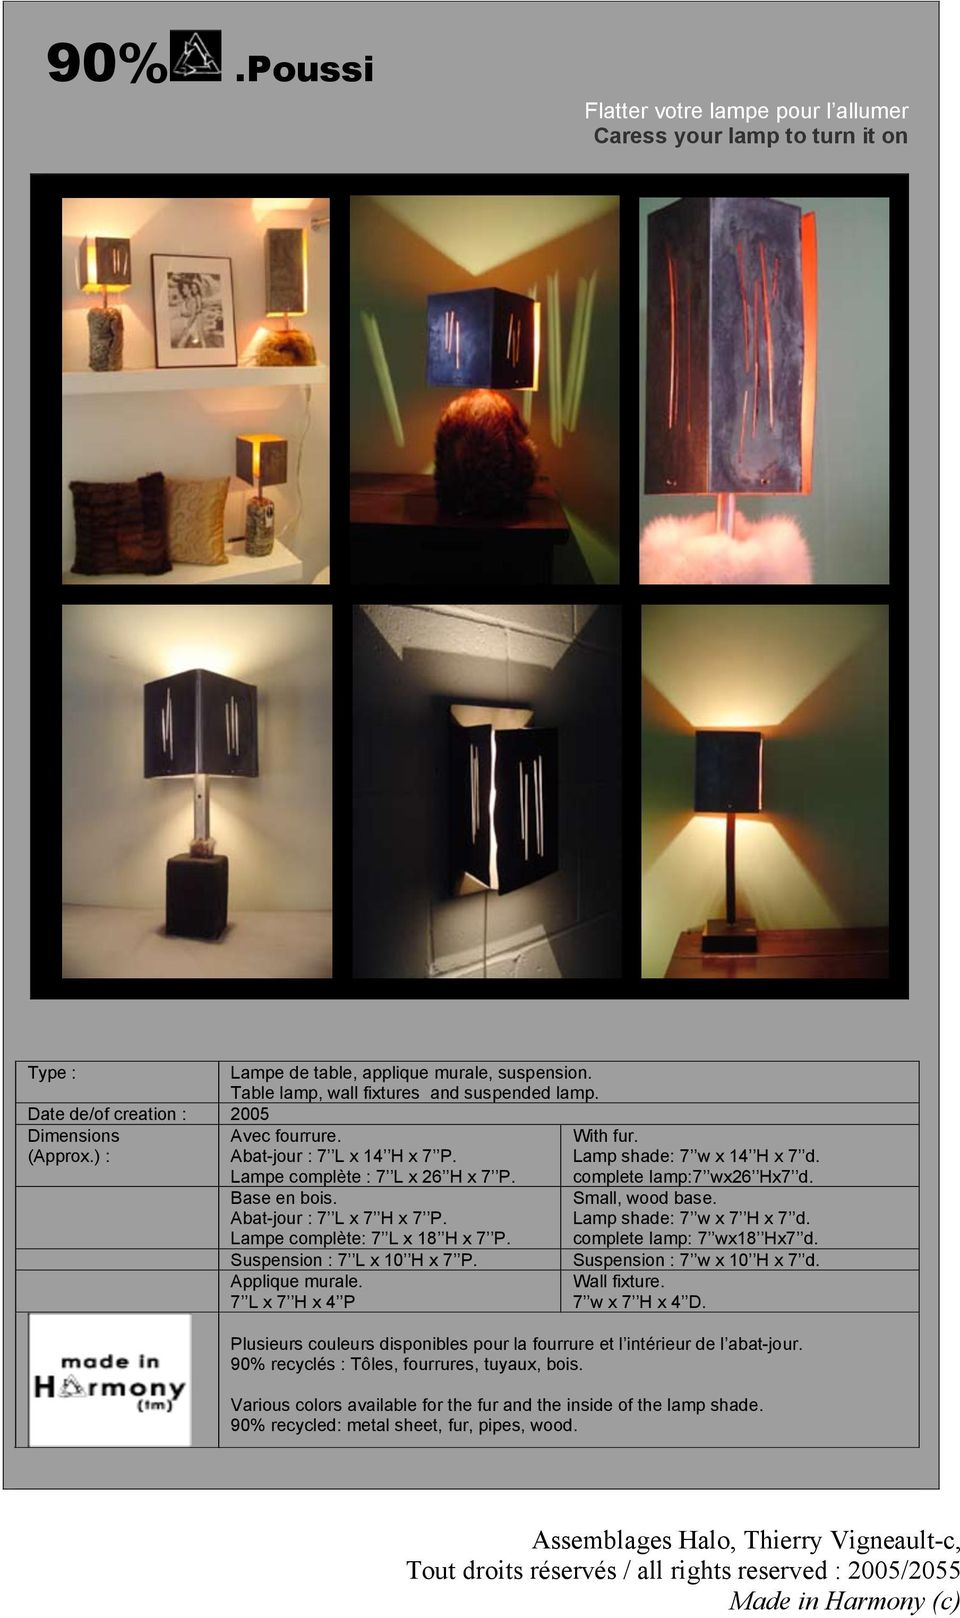 Lampe complète: 7 L x 18 H x 7 P. Suspension : 7 L x 10 H x 7 P. Applique murale. 7 L x 7 H x 4 P With fur. Lamp shade: 7 w x 14 H x 7 d. complete lamp:7 wx26 Hx7 d. Small, wood base.